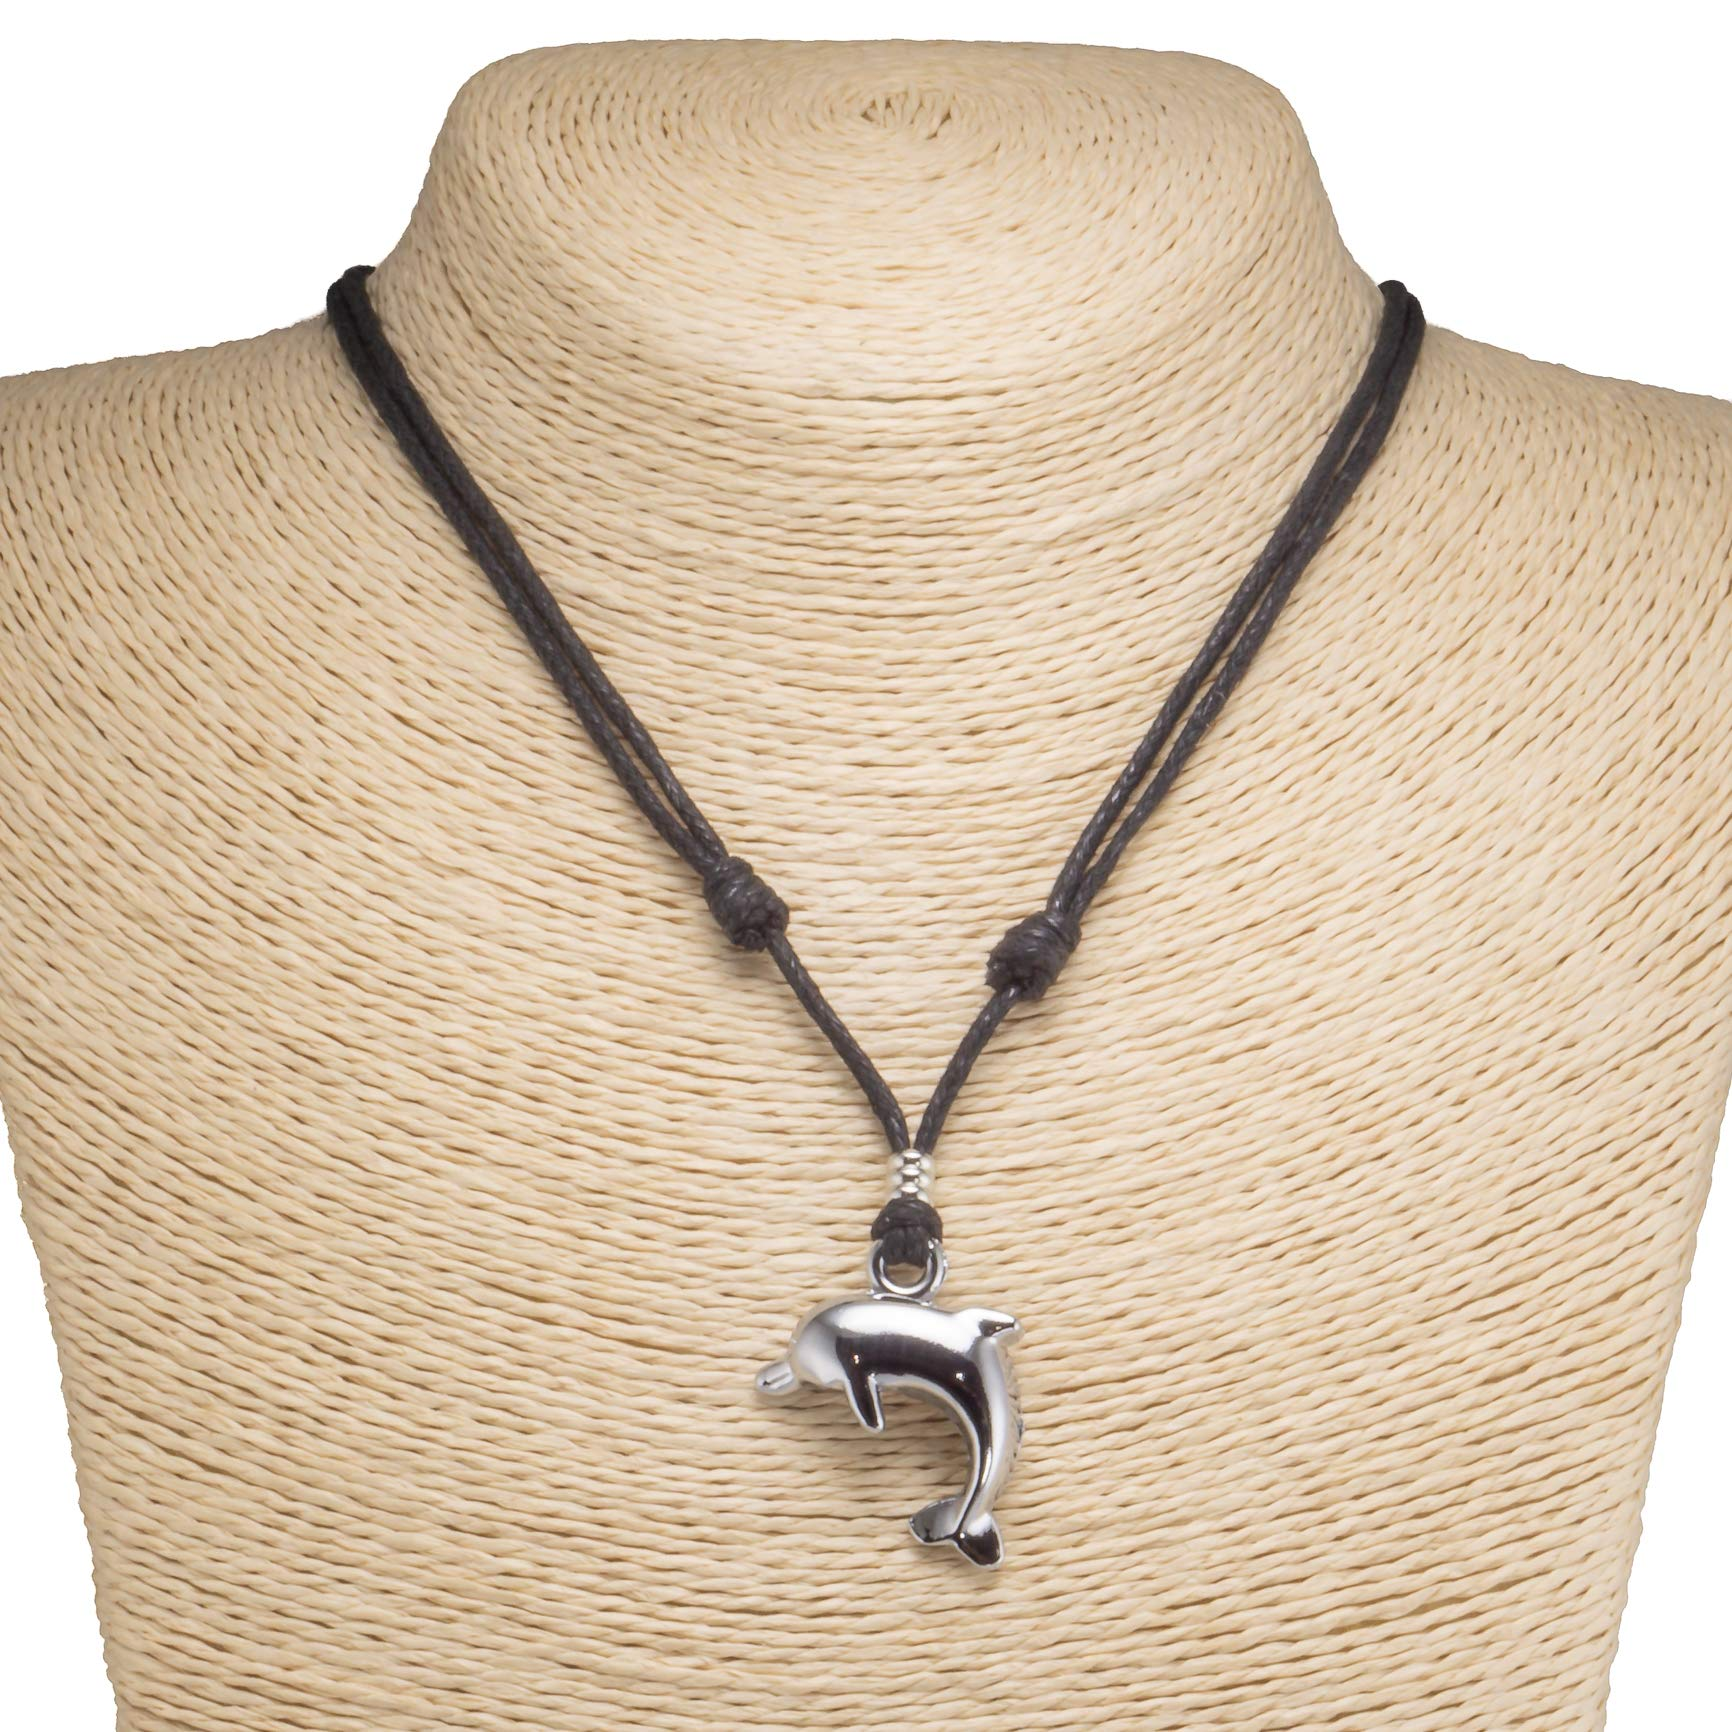 Dolphin Pendant on Adjustable Rope Necklace